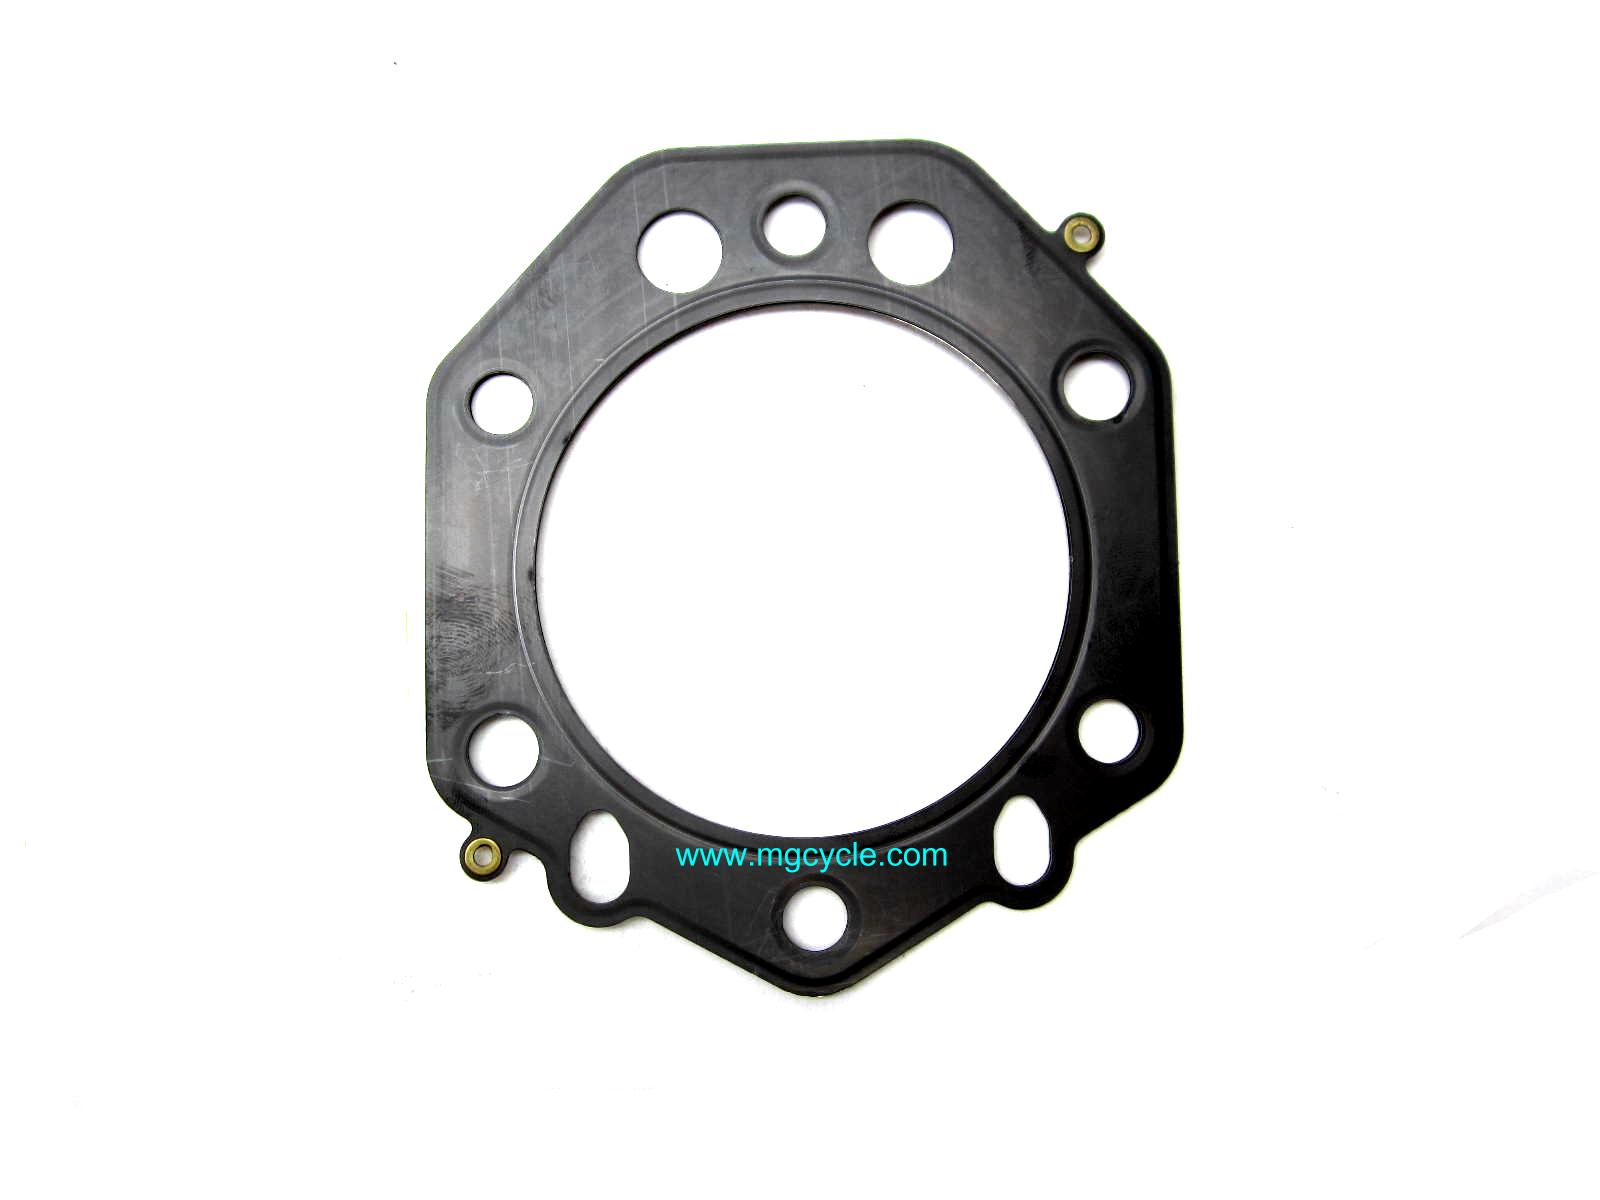 head gasket some Breva 1100, Griso 1100 2nd version